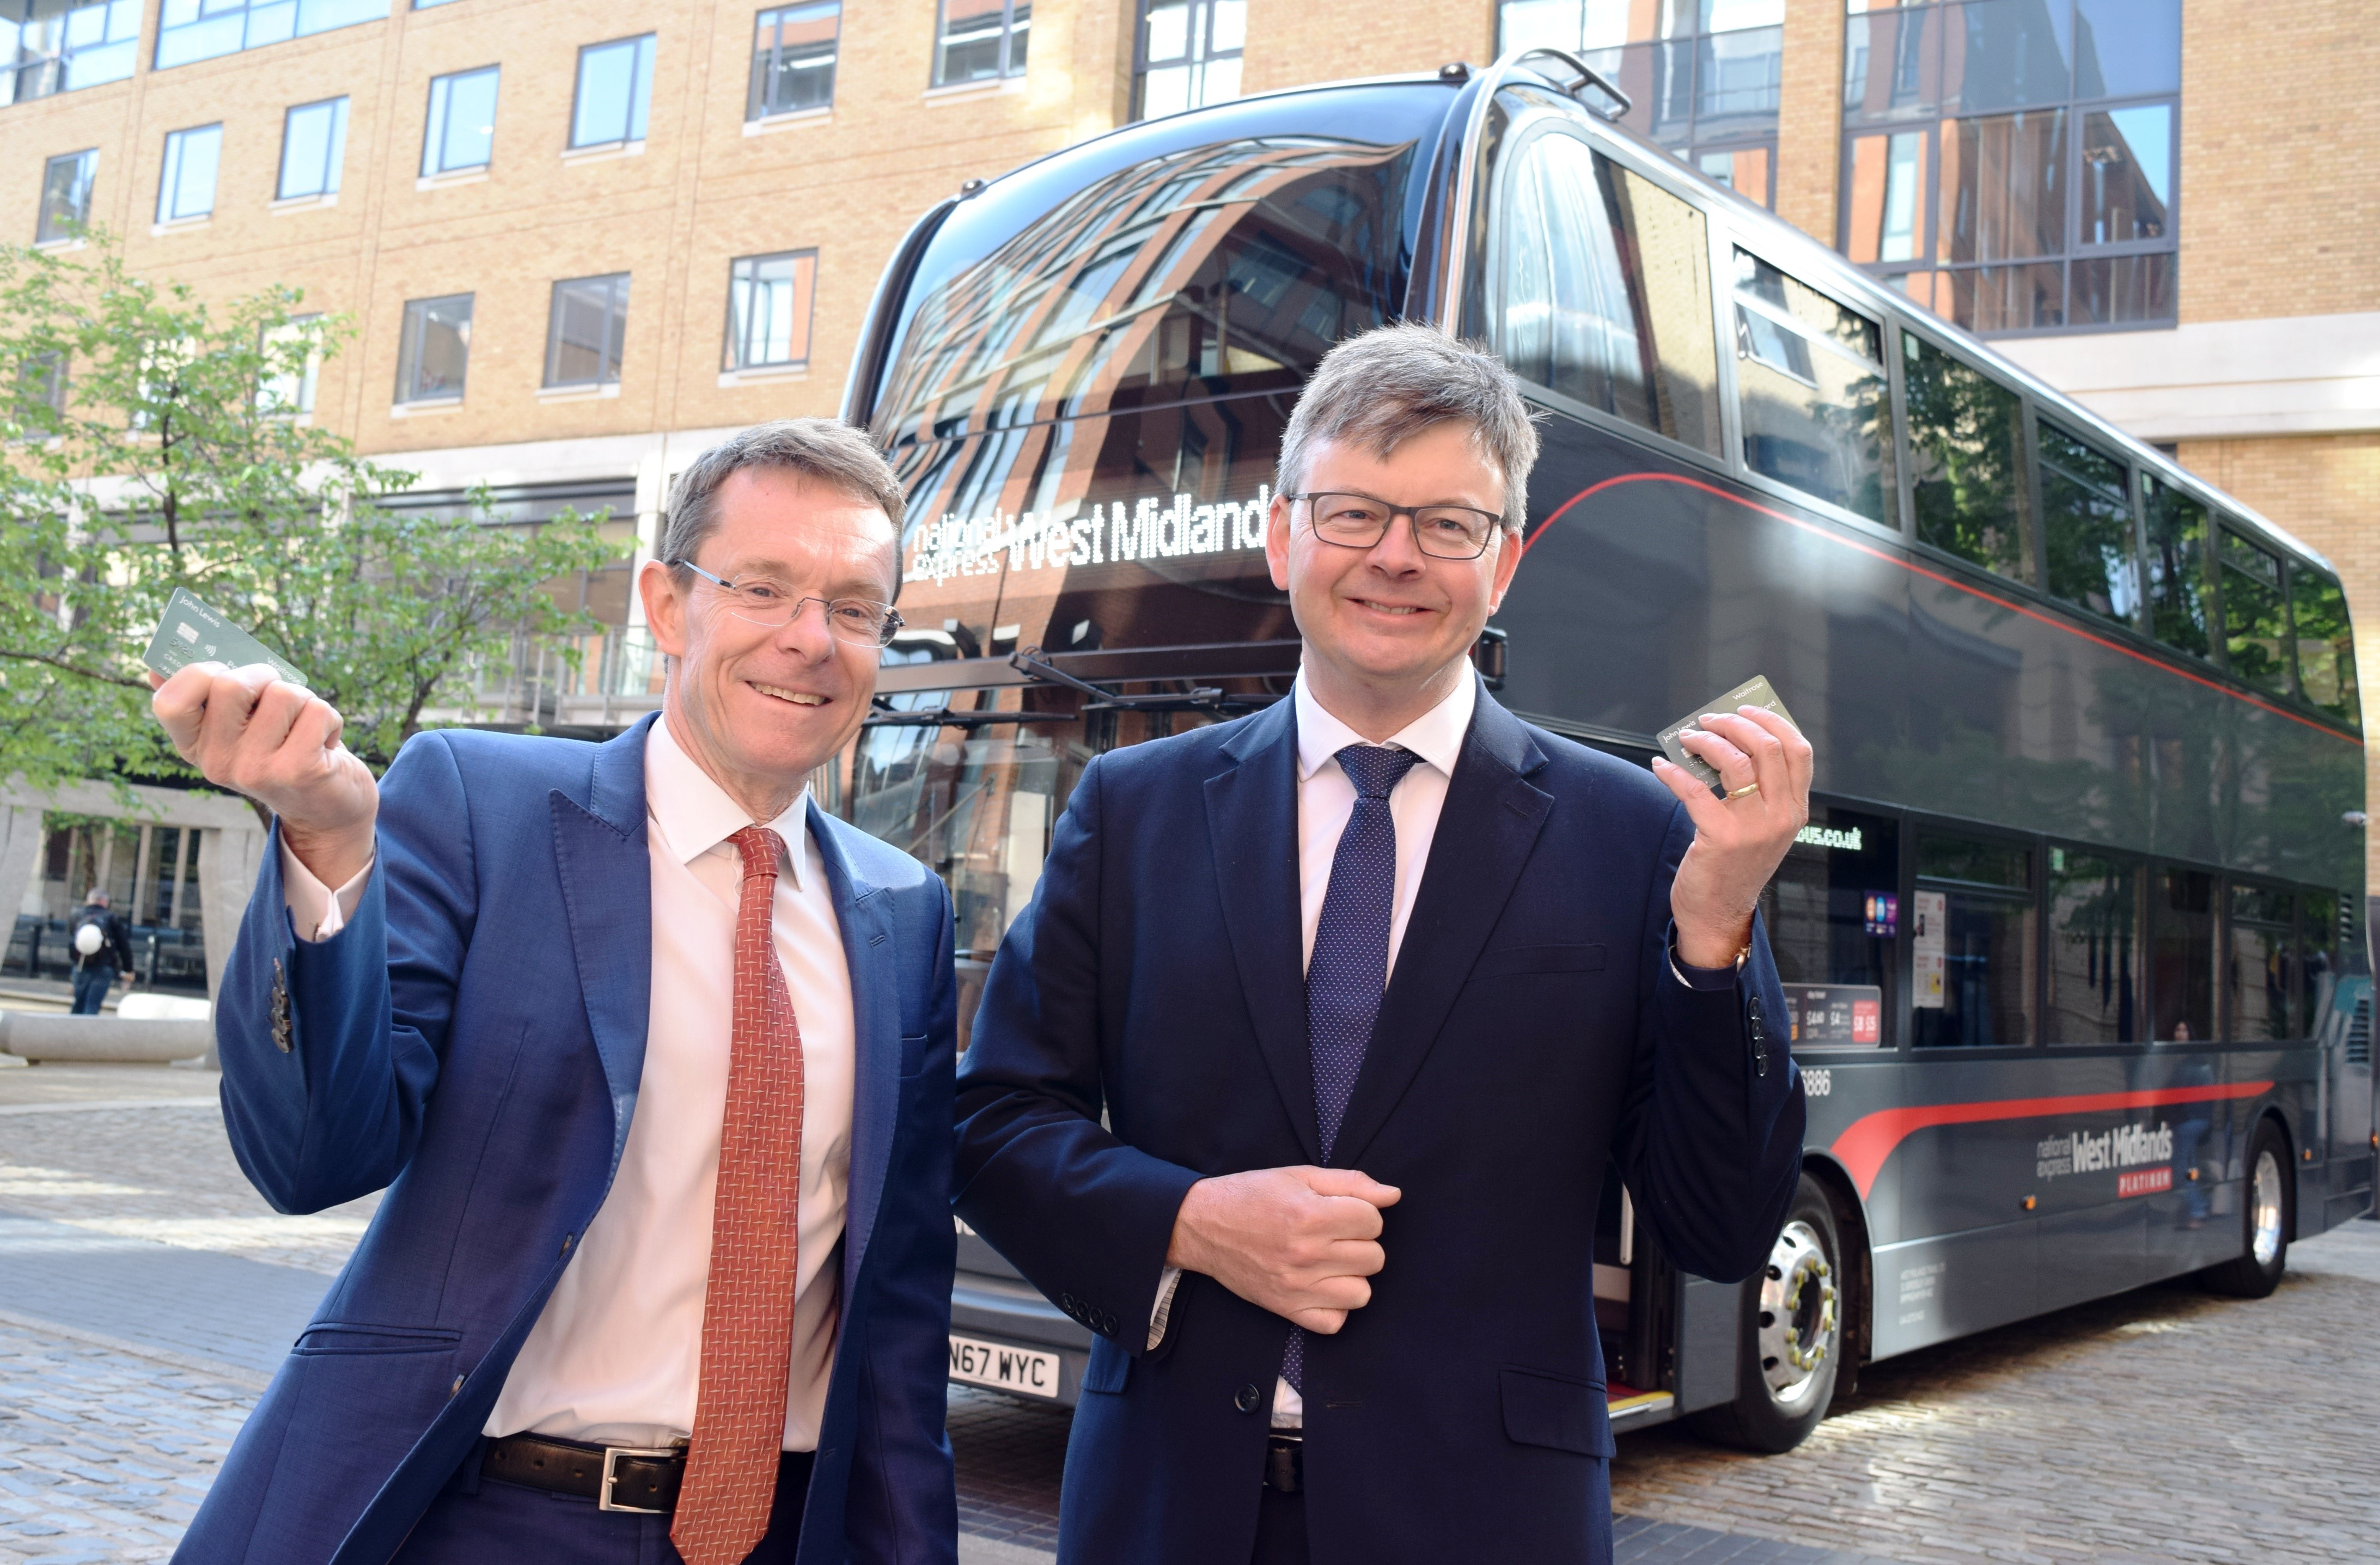 Contactless payment rolled out on to National Express West Midlands buses